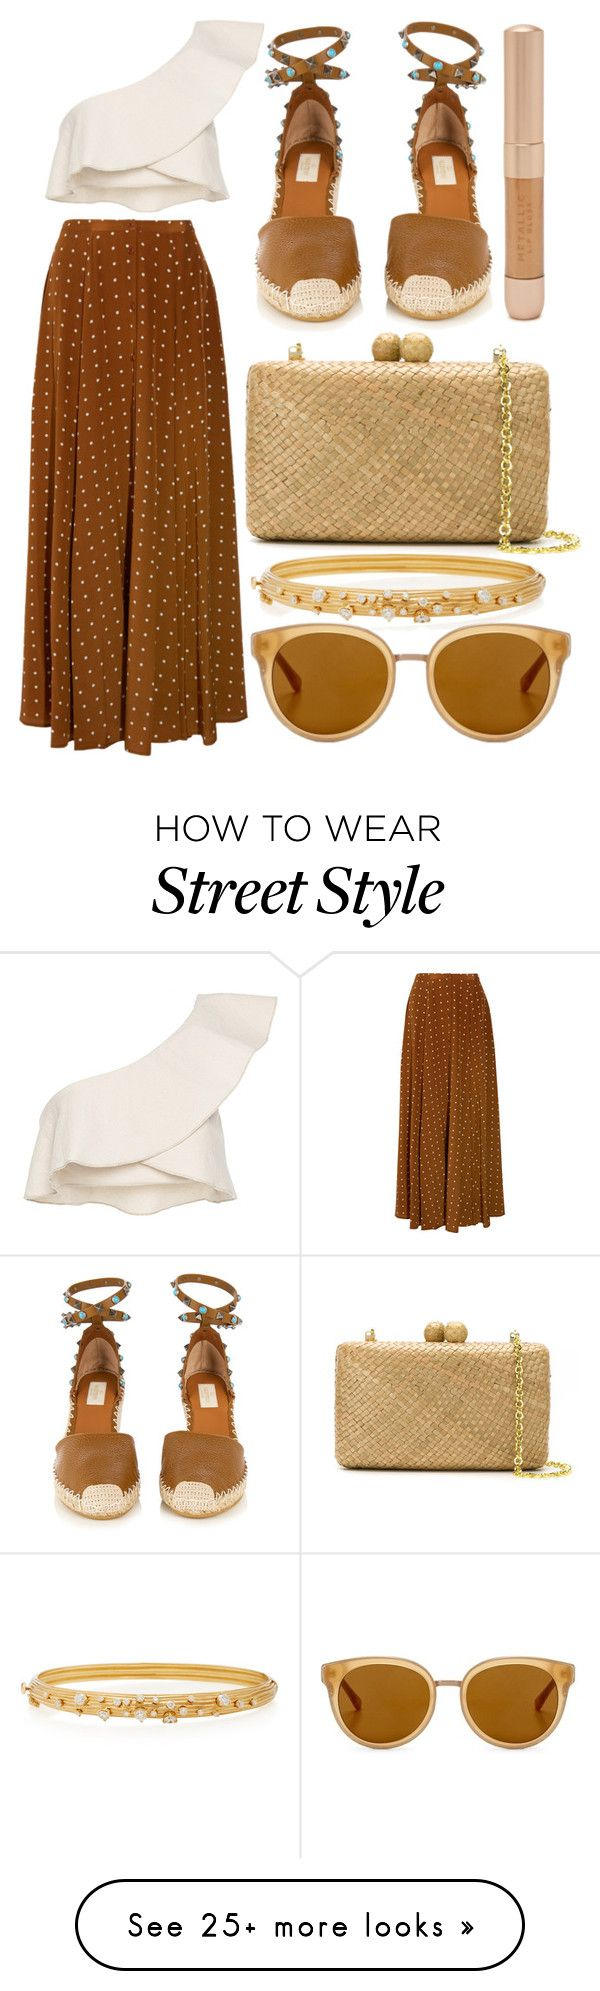 """street style"" by sisaez on Polyvore featuring Isabel Marant, Diane Von Furstenberg, Valentino, Forever 21, Serpui, Hueb and Draper James"